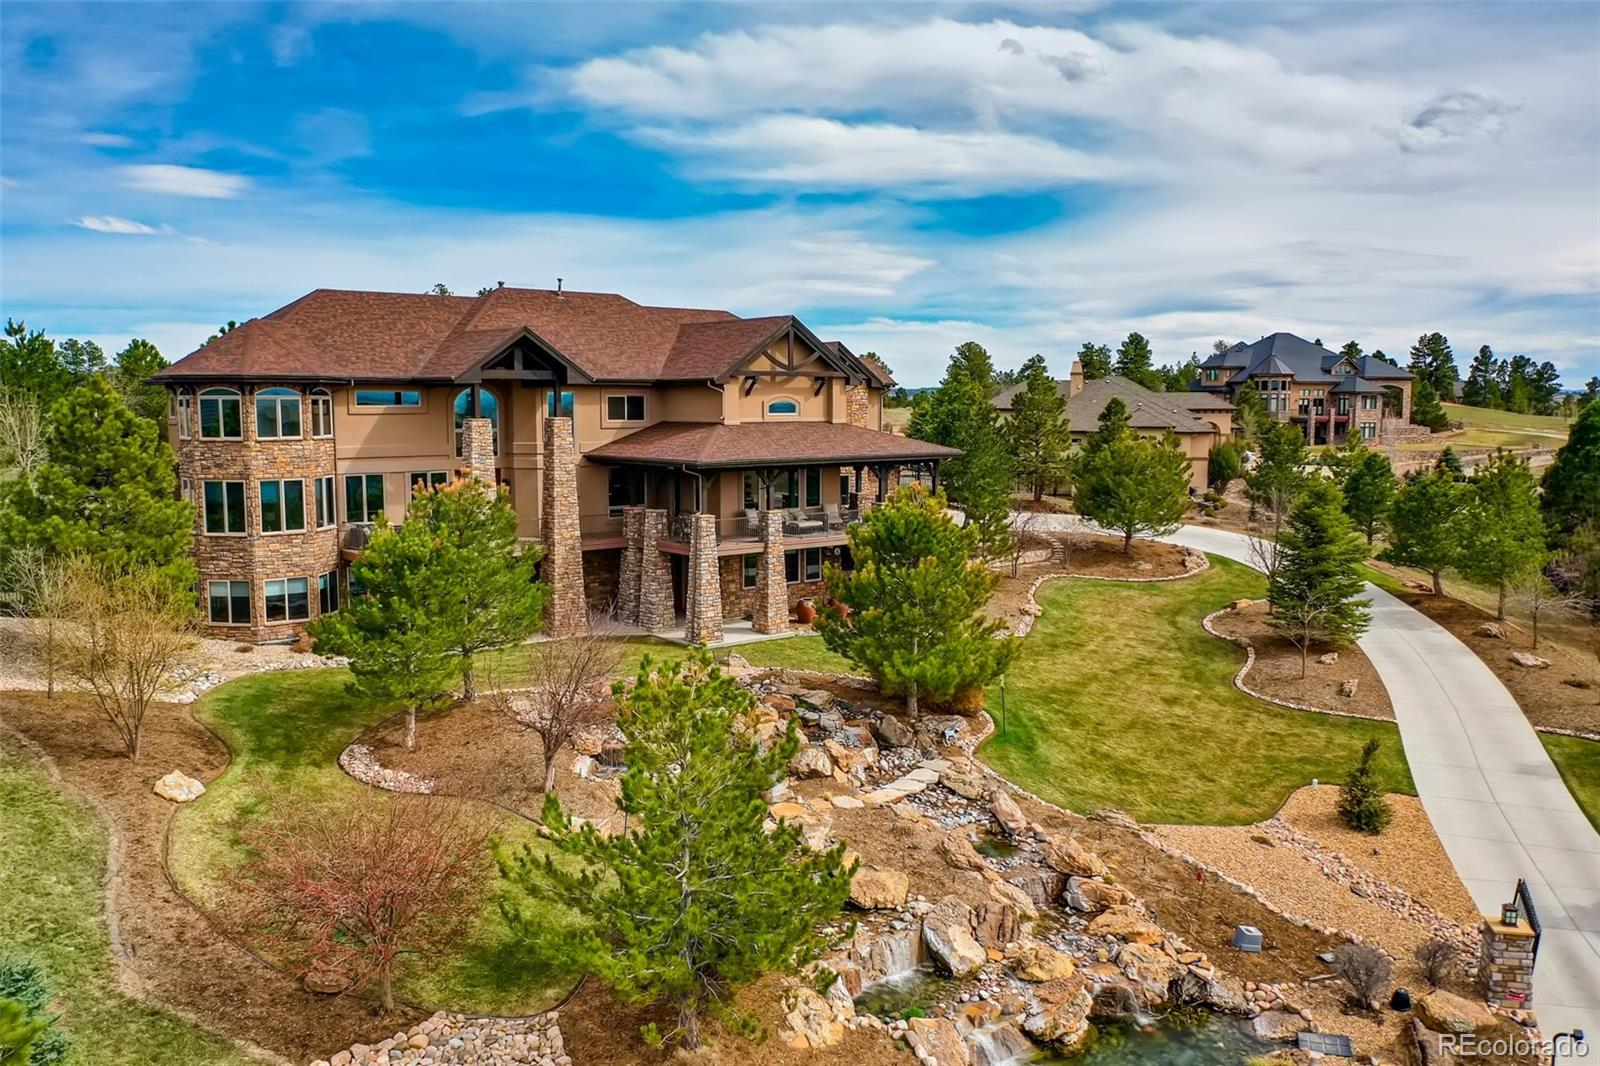 "Colorado luxury defined with extraordinary architectural details and magnificent mountain views from all three levels. Located in a quiet cul-de-sac in the heart of the exclusive Timbers at the Pinery neighborhood; this outdoor oasis sits atop an elevated 1.49 acre lot with an impressive cascading water feature, whispering pines, & in-ground hot tub with water fall. The kitchen, breakfast room, & great room create the heart & soul of the home. A gourmet kitchen w/ large slab granite island, Dacor & Wolf appliances, alder cabinetry features a wet bar, prep-station, ice maker, butler's pantry, built-in refrigerator, & breakfast bar. Gorgeous Great Room w/ striking stone fireplace ascending to the timber-trussed ceiling & custom built-in's.  The main level features, one of two laundry rooms, well appointed formal dining room, & home office w/ custom wood work, built-in's & private outdoor patio.  Upper level features a generous master retreat w/ spectacular mtn views, luxury sitting area, fireplace for romantic evenings, elegant 5-piece master bath w/ French doors, heated tile floors, walk-through shower, jetted tub, dual sinks & impressive walk-in closet.  Three additional bedrooms each w/ walk-in closets & private bathrooms, Upper Laundry & Loft complete the upper level. The show-stopping walkout level boasts a Family room w/ stone fireplace, impressive wet bar w/ full sized fridge, hidden bar TV, trash compactor, dishwasher, dual tap kegerator, ice maker & island w/ granite counters & bar seating, Game Room w/ built-in leather couch, retractable TV, & aquarium, Media Room w/ 8 person stadium seating, 120"" screen, & surround sound, Wine Cellar w/ wood barrel ceiling previously featured in Architectural Digest, & 5th bedroom, 3/4 bath complete the lower level.  Enjoy custom tech features; Control4, JellyFish Outdoor Lighting, & Nest Thermostat. Outside enjoy the covered patio with outdoor kitchen, natural gas grill, mini fridge and destination patio with gas fire pit."